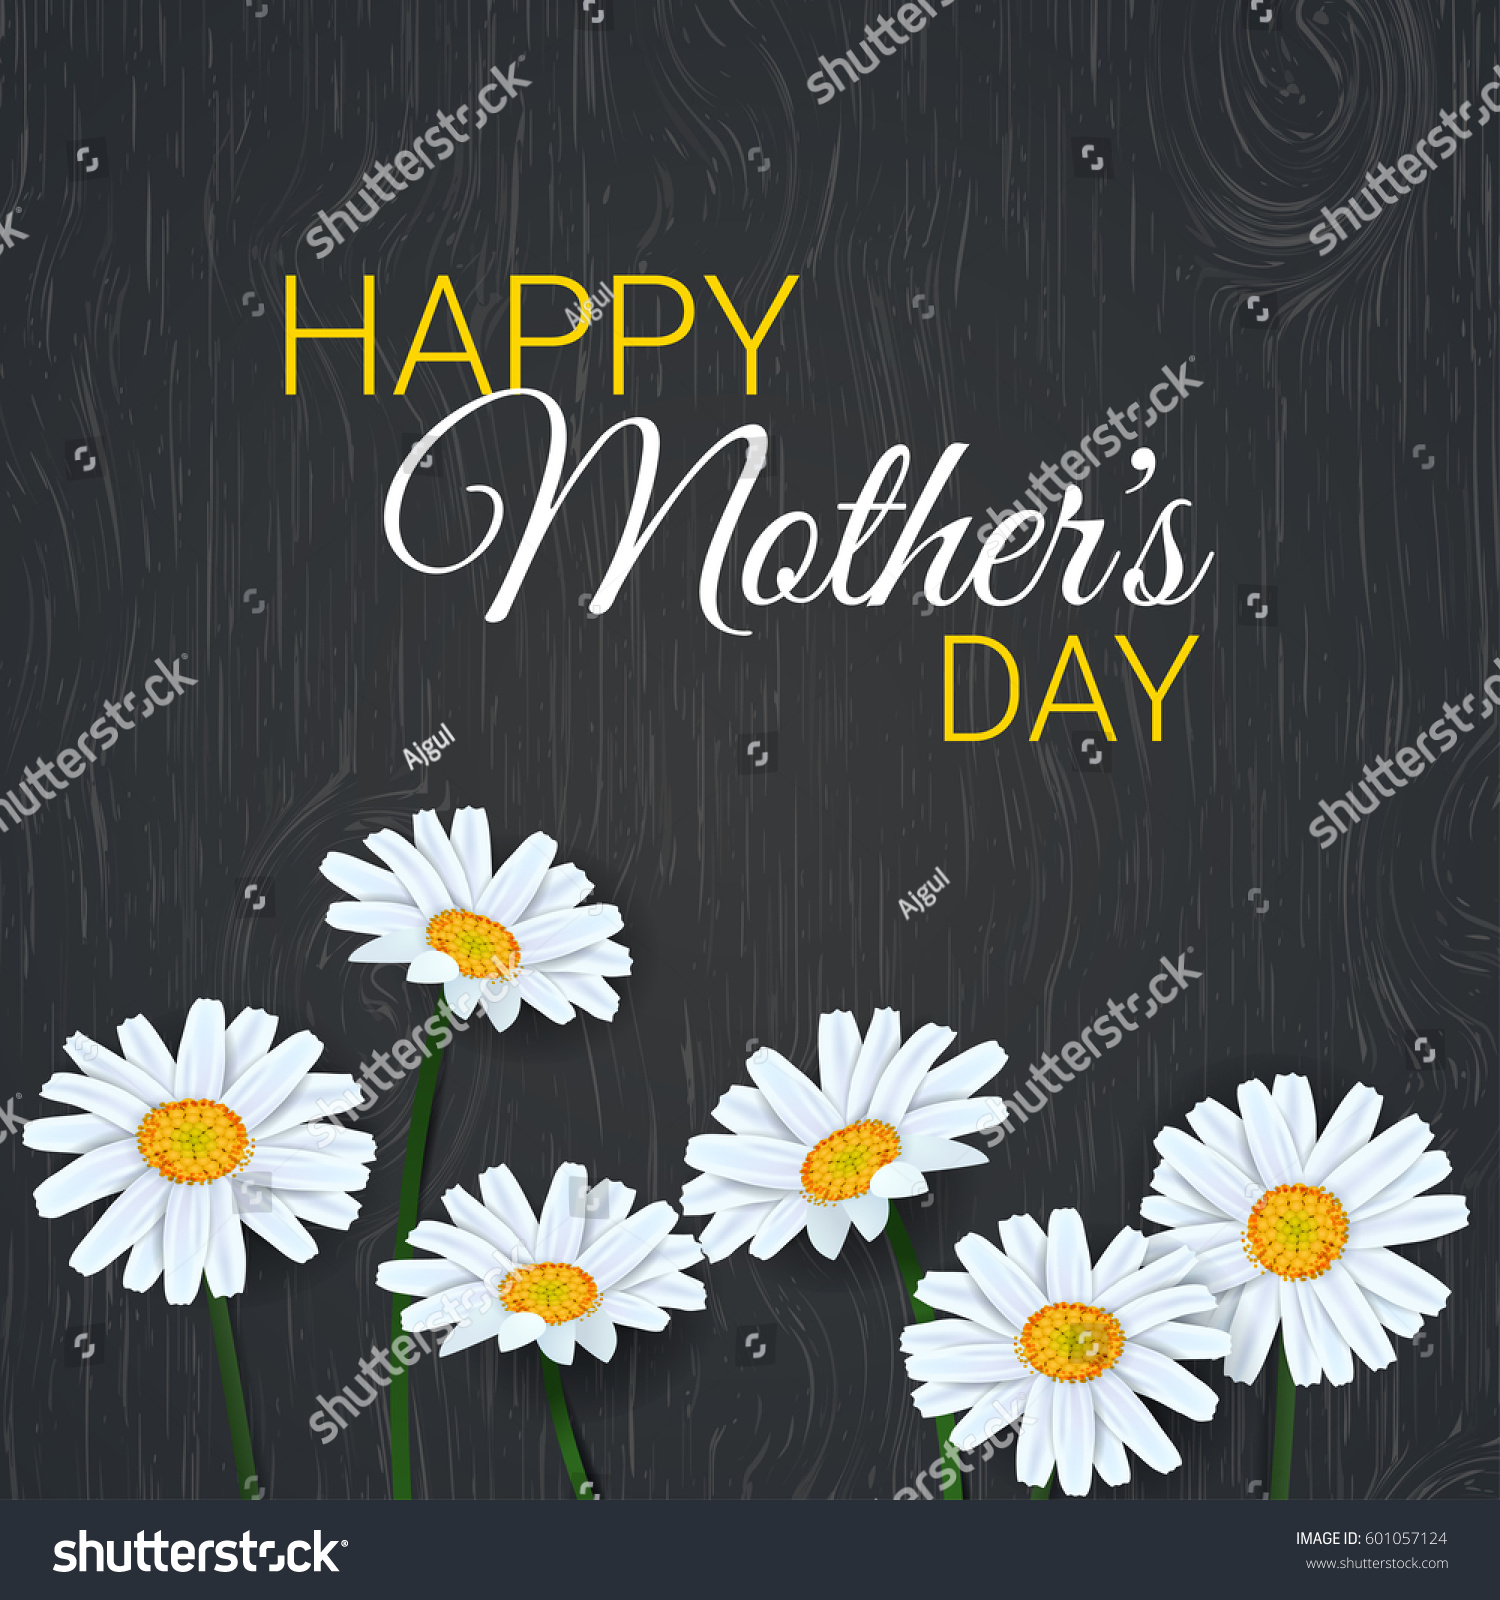 mothers day background beautiful daisy flowers stock photo (photo